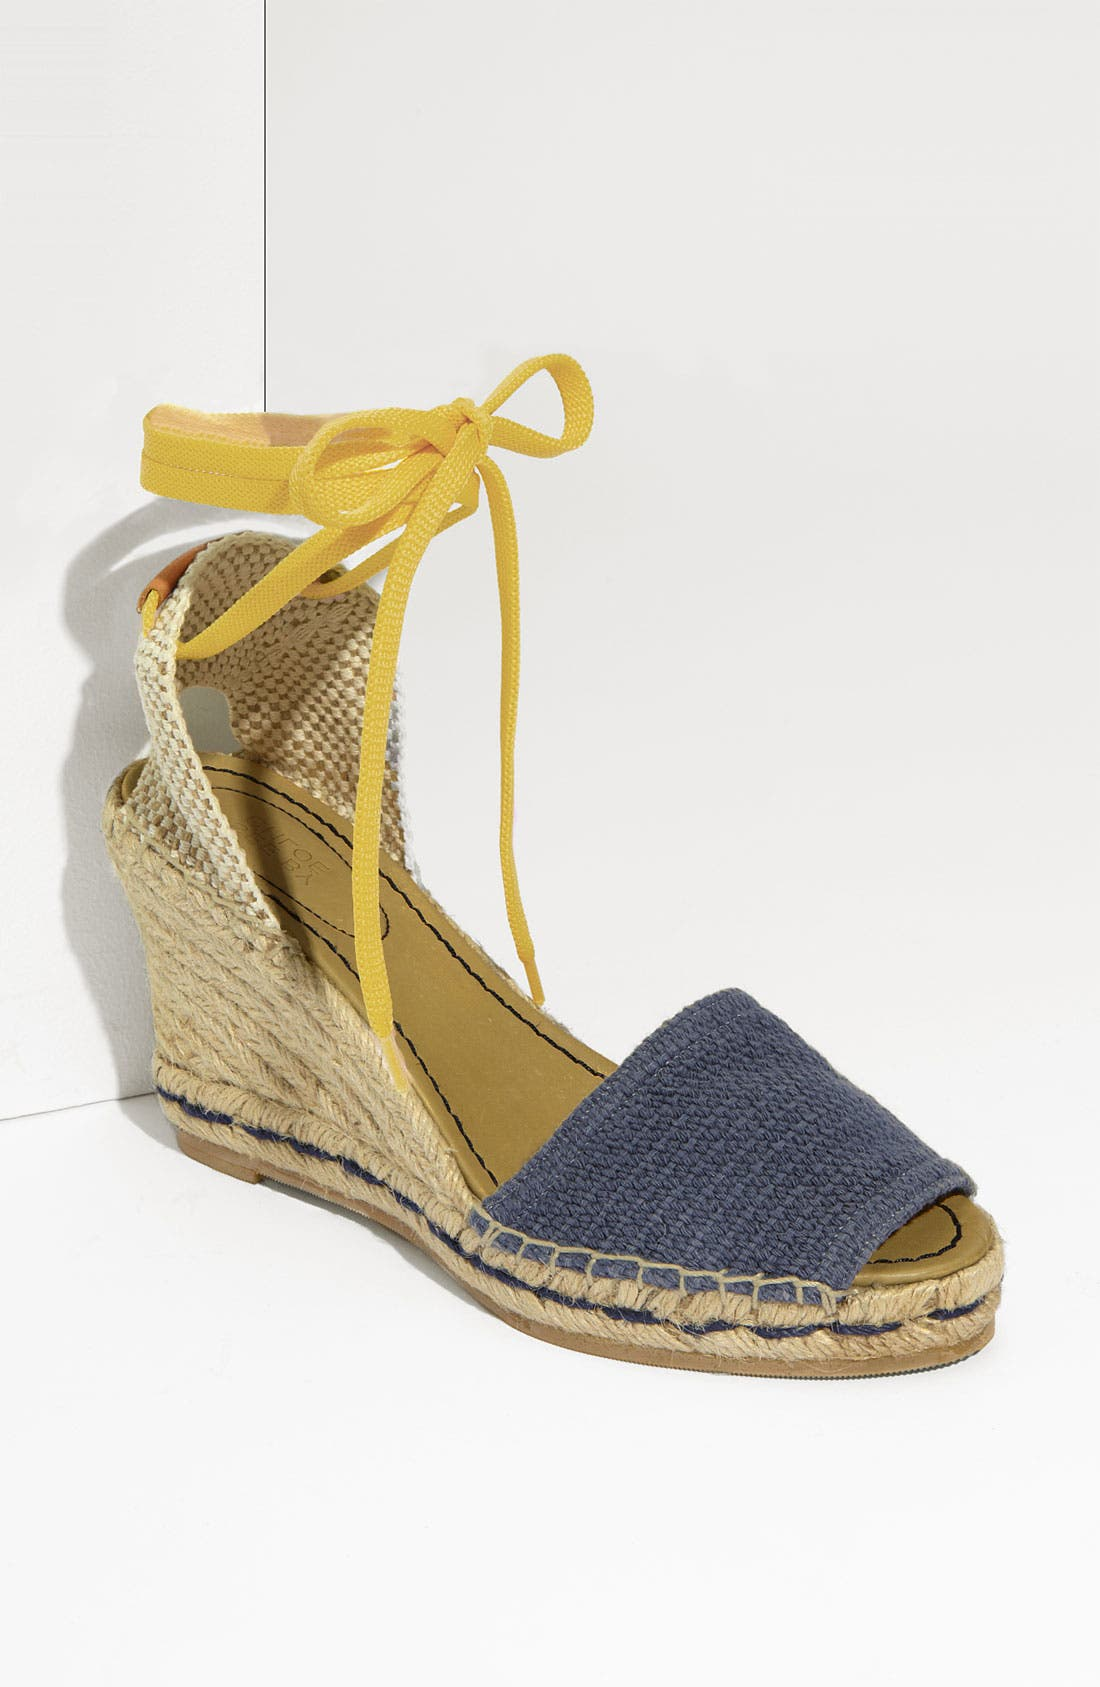 Alternate Image 1 Selected - See by Chloé Ankle Tie Espadrille